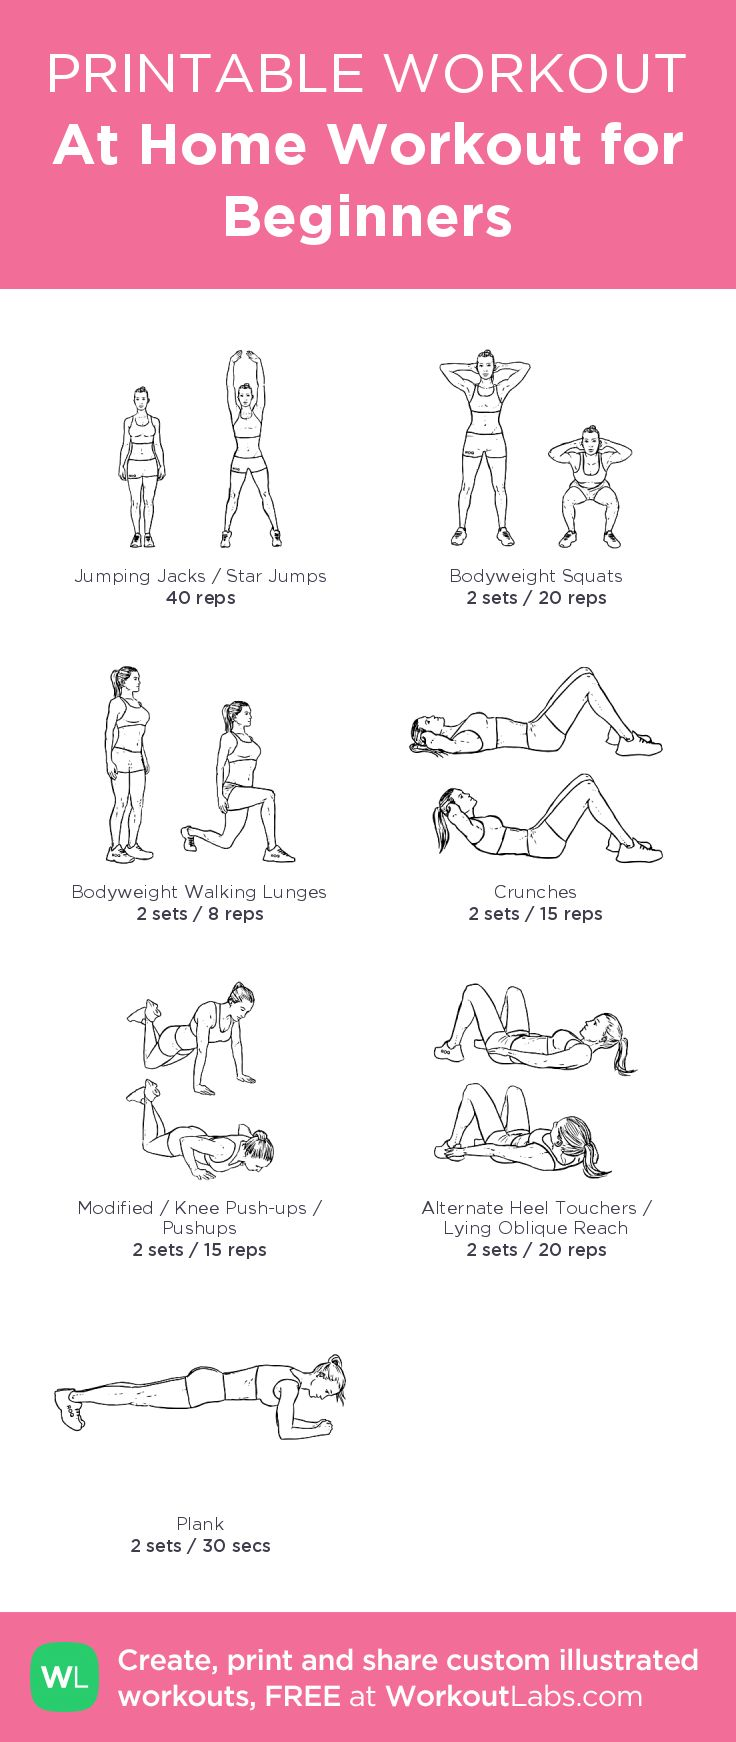 At Home Workout for Beginners illustrated exercise plan